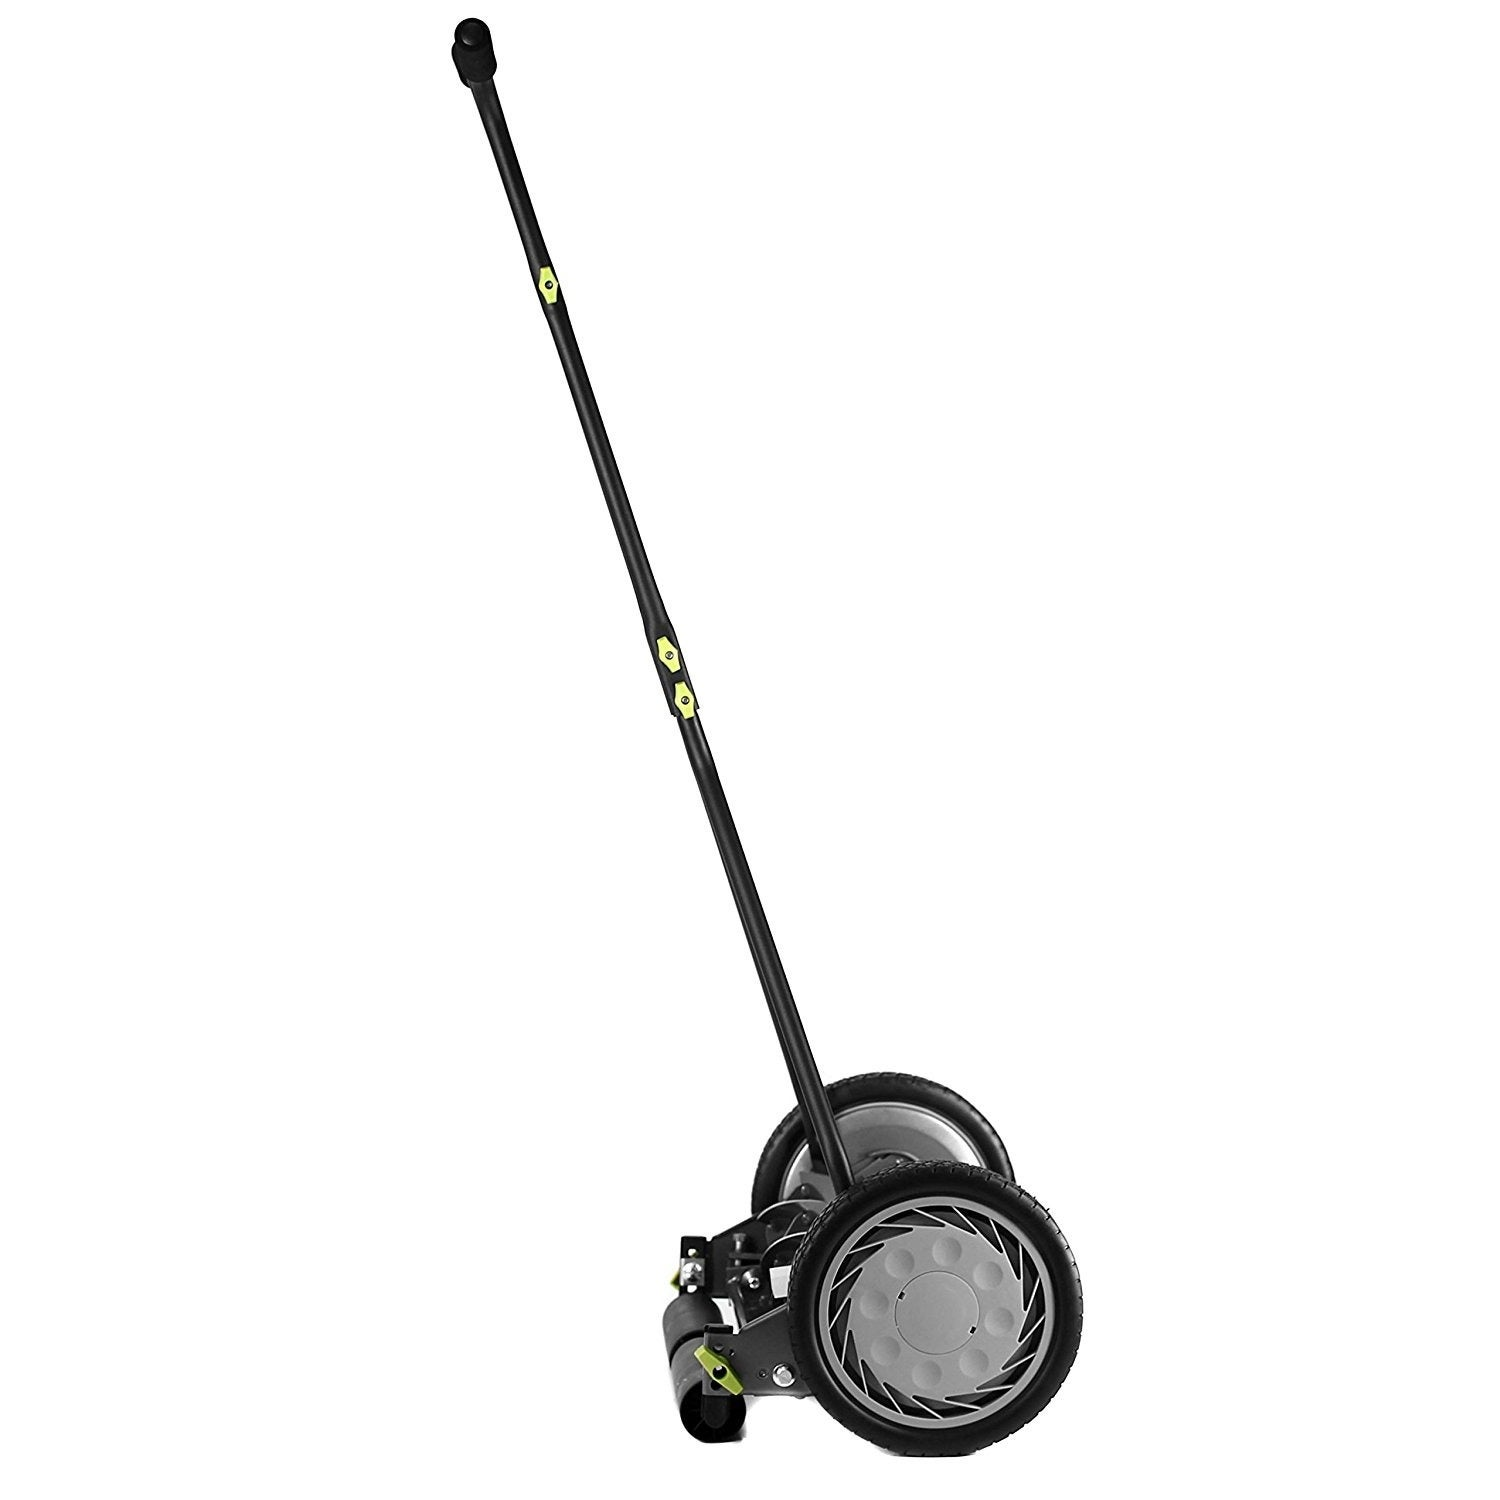 Earthwise 16 Inch 7 Blade Reel Mower Ships To Canada 12916155